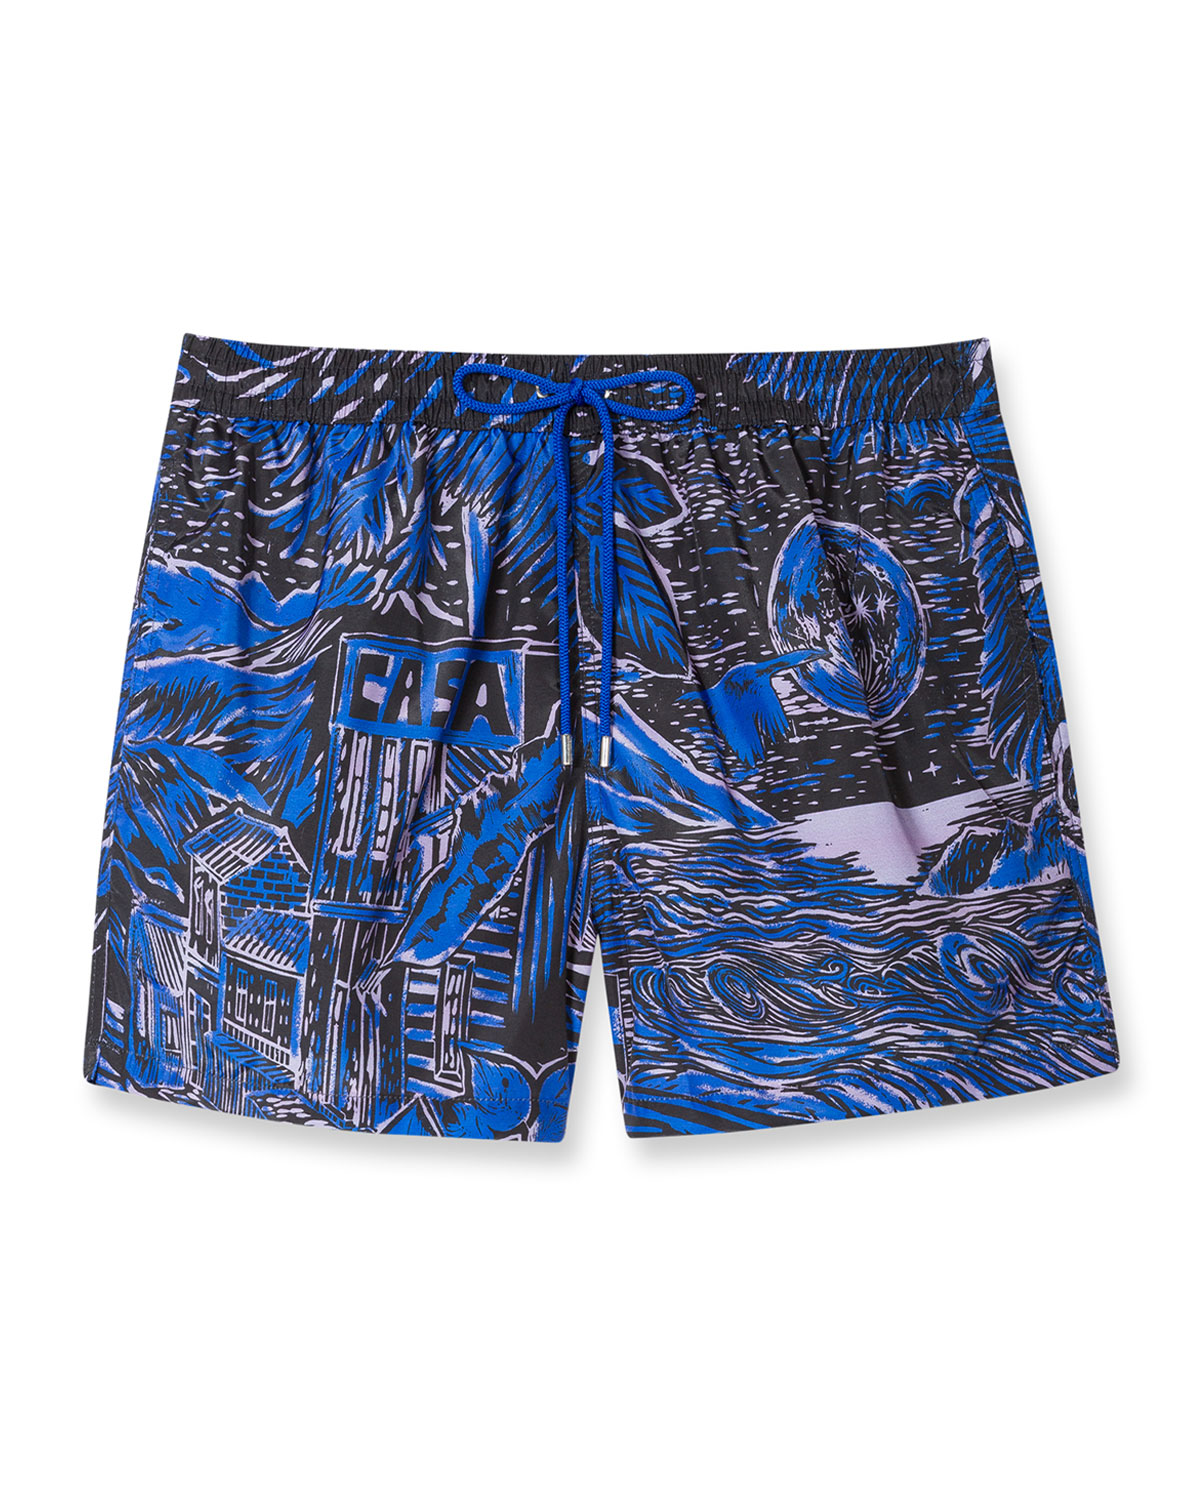 Paul Smith MEN'S CHILEAN-PRINT SWIM SHORTS